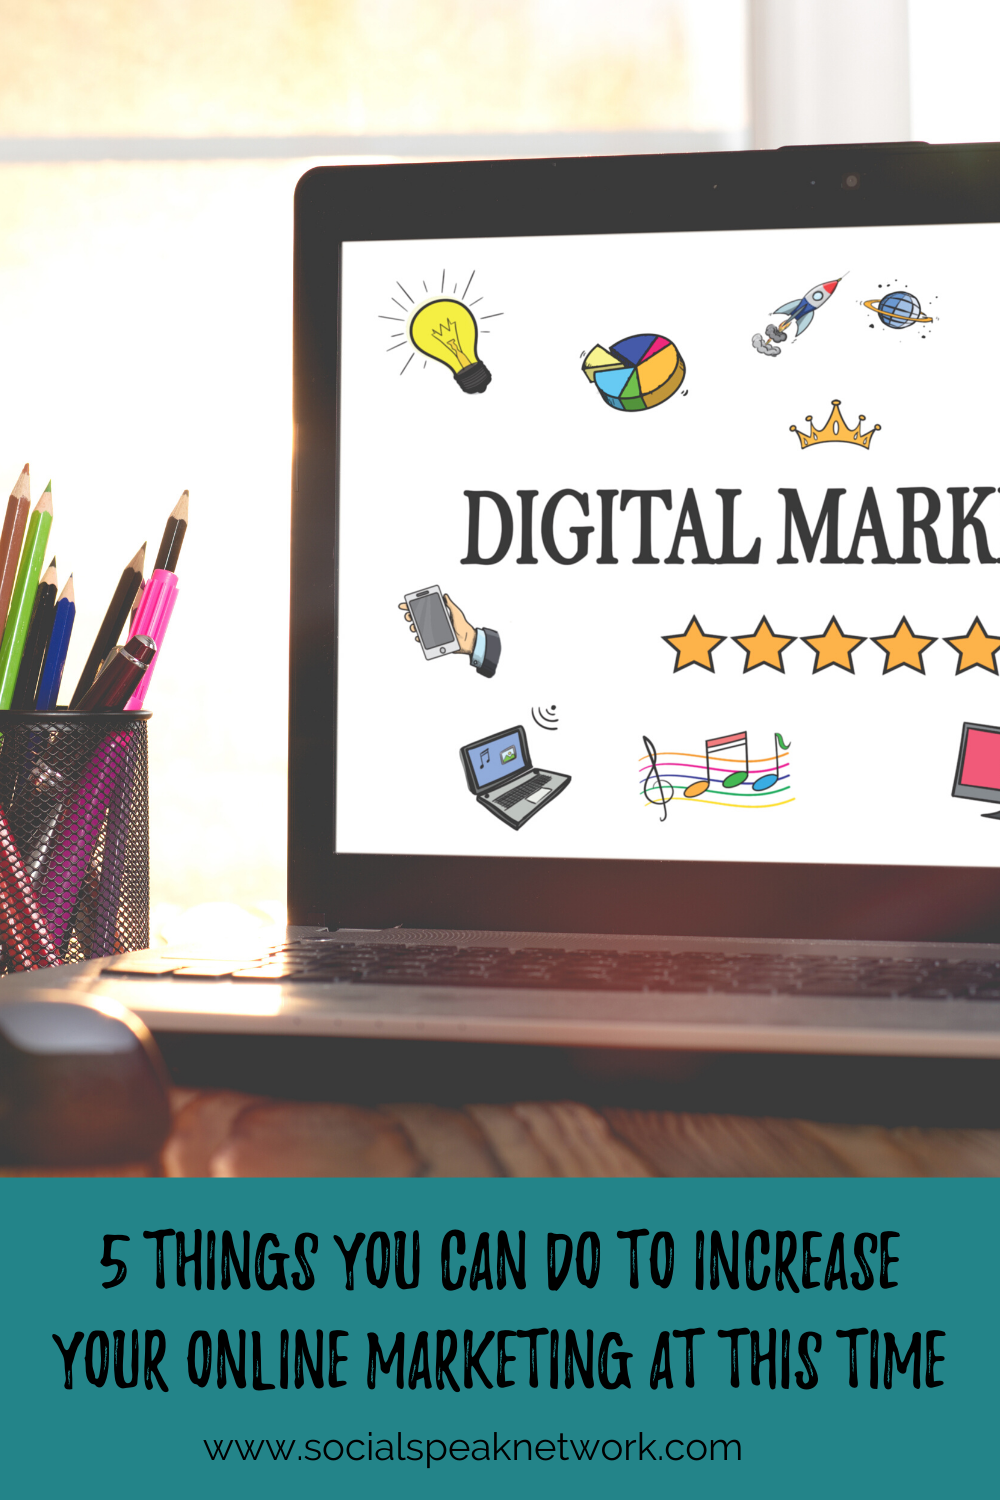 5 Things You Can Do to Increase Your Online Marketing at This Time